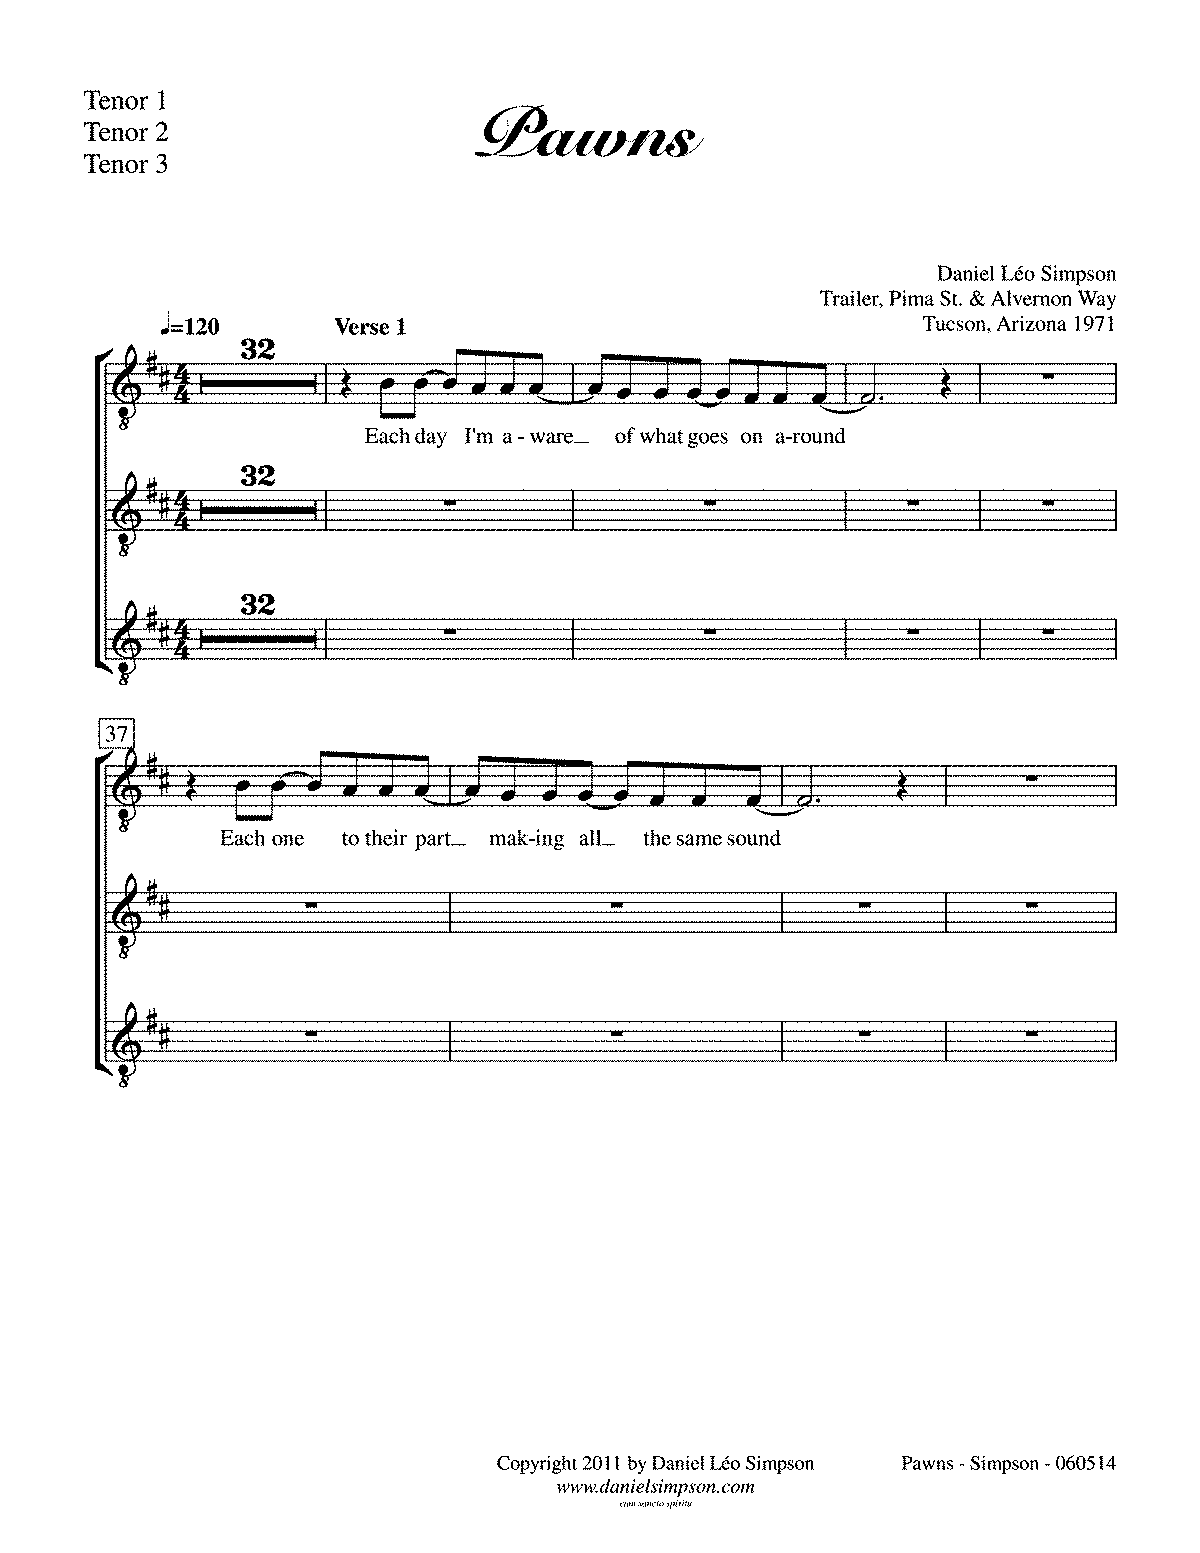 PMLP486940-VOCALS-pawns-simpson-full-score-imslp-102713.pdf